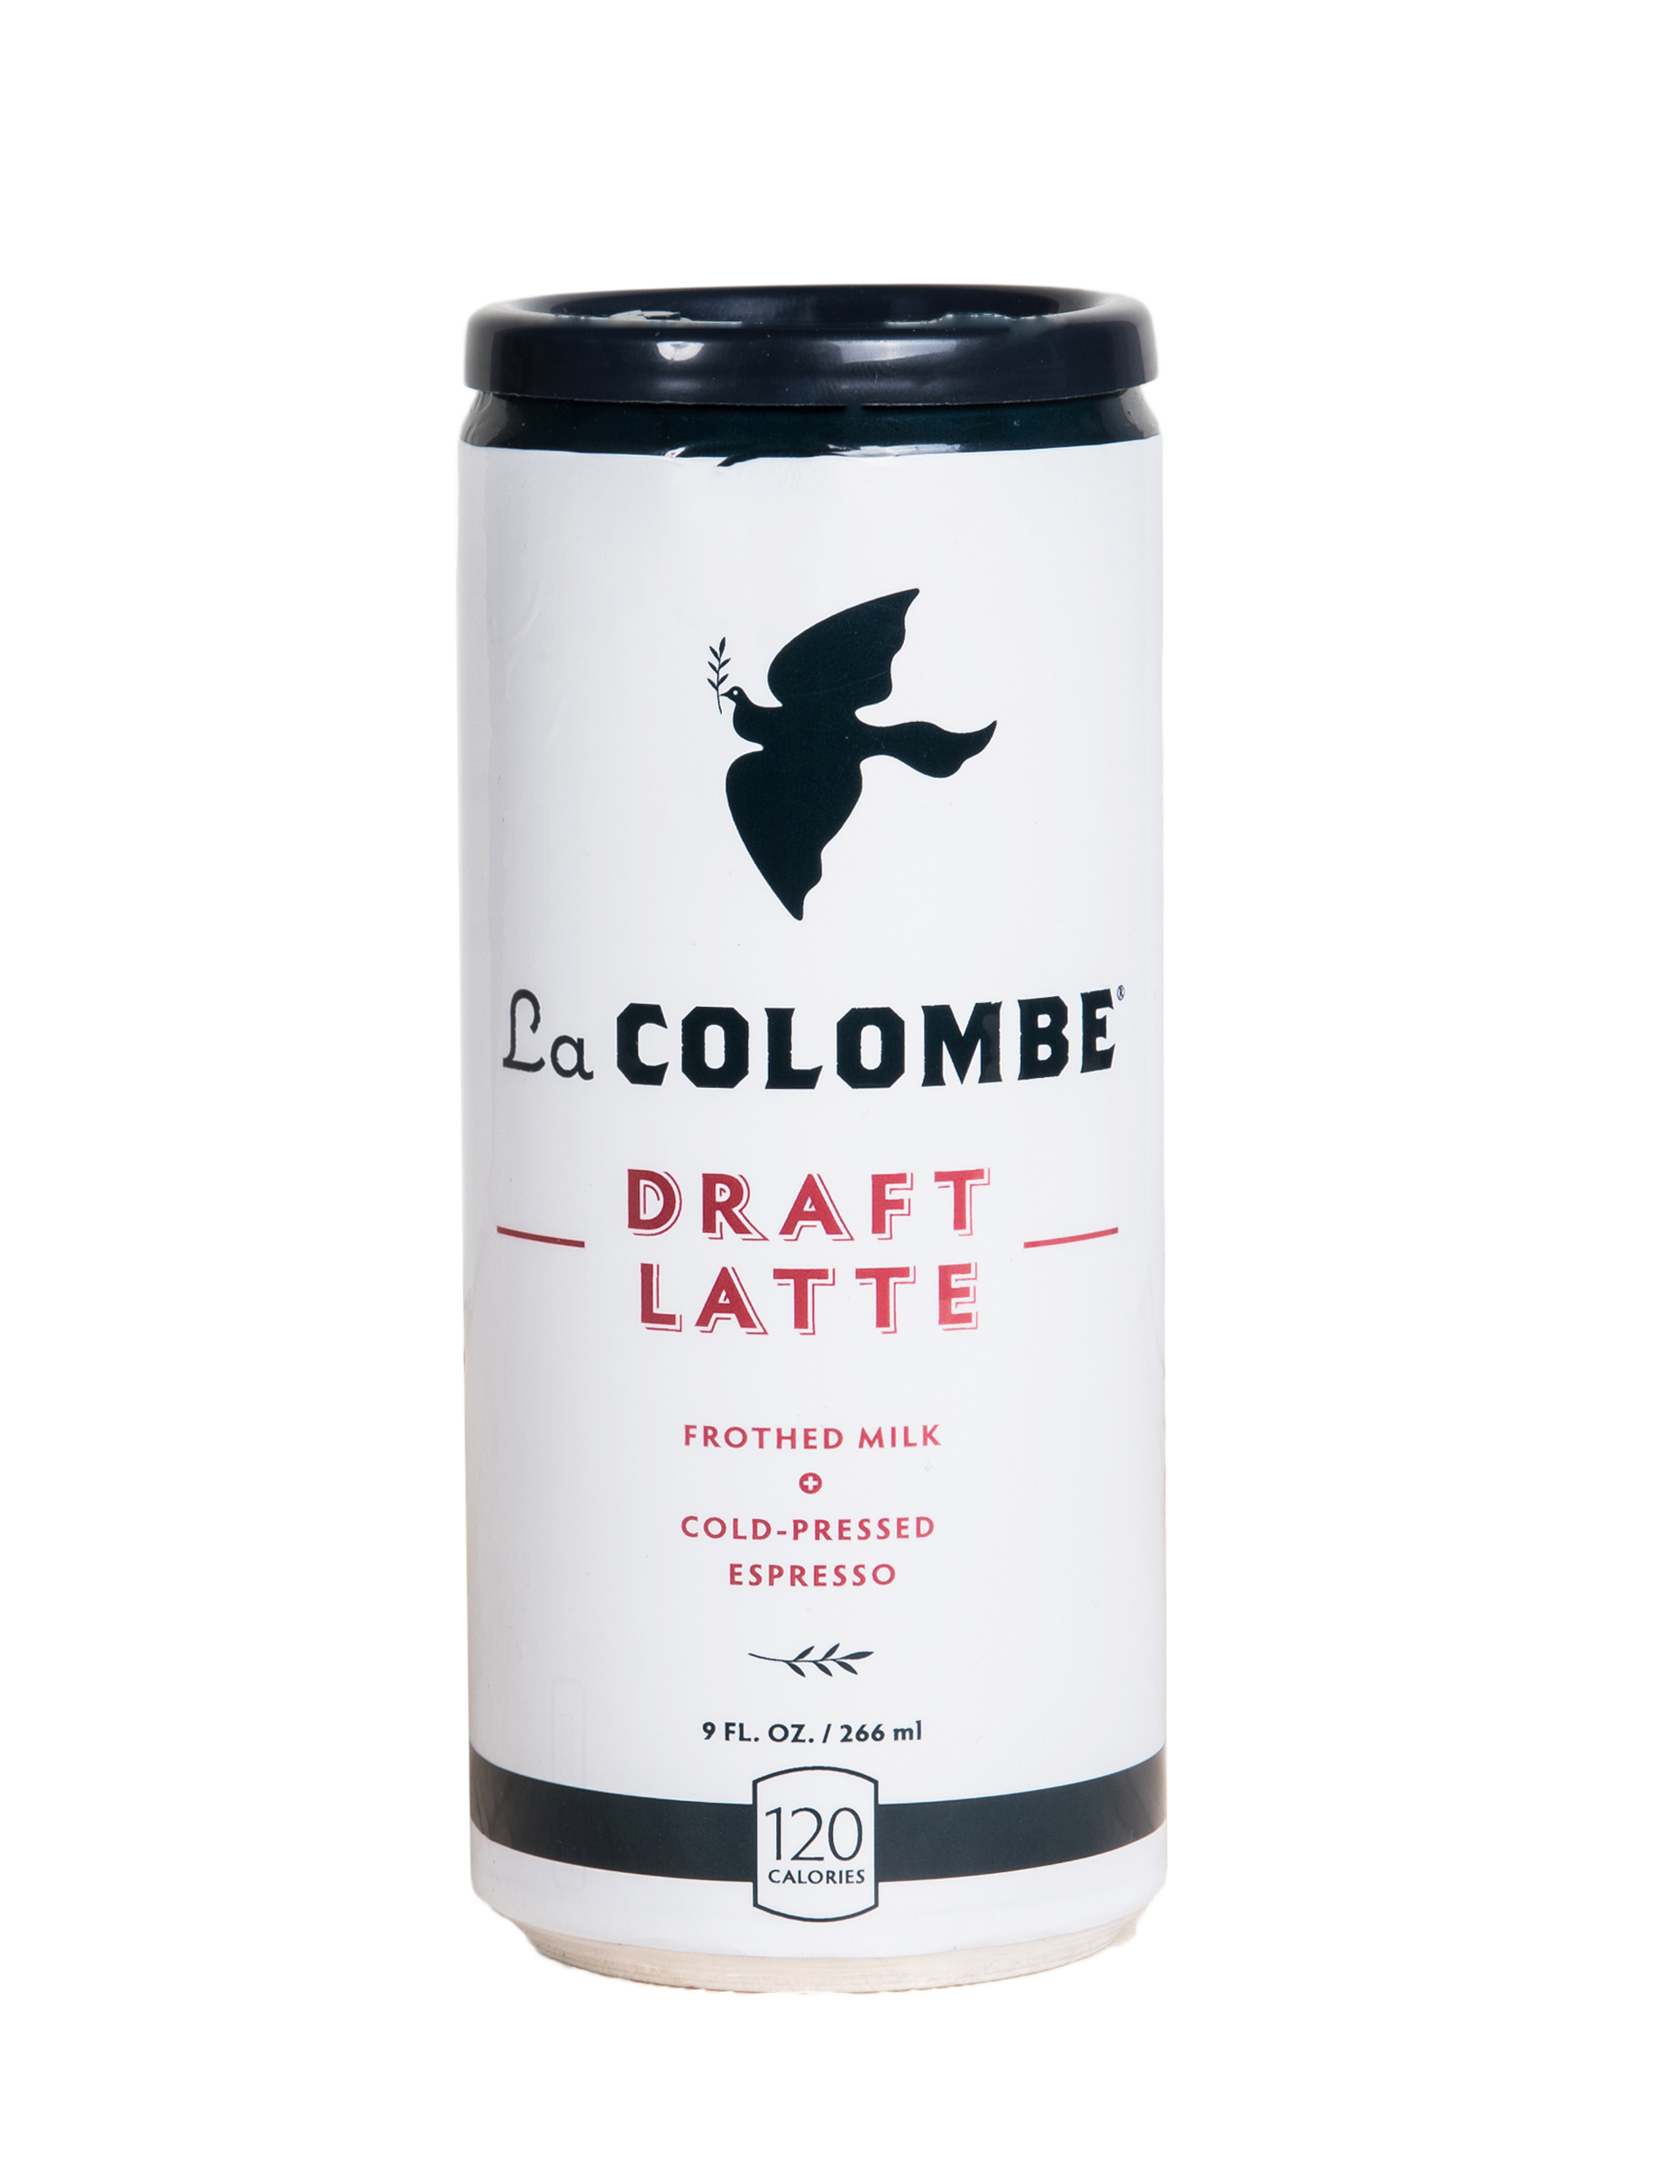 La Columbe Draft Latte